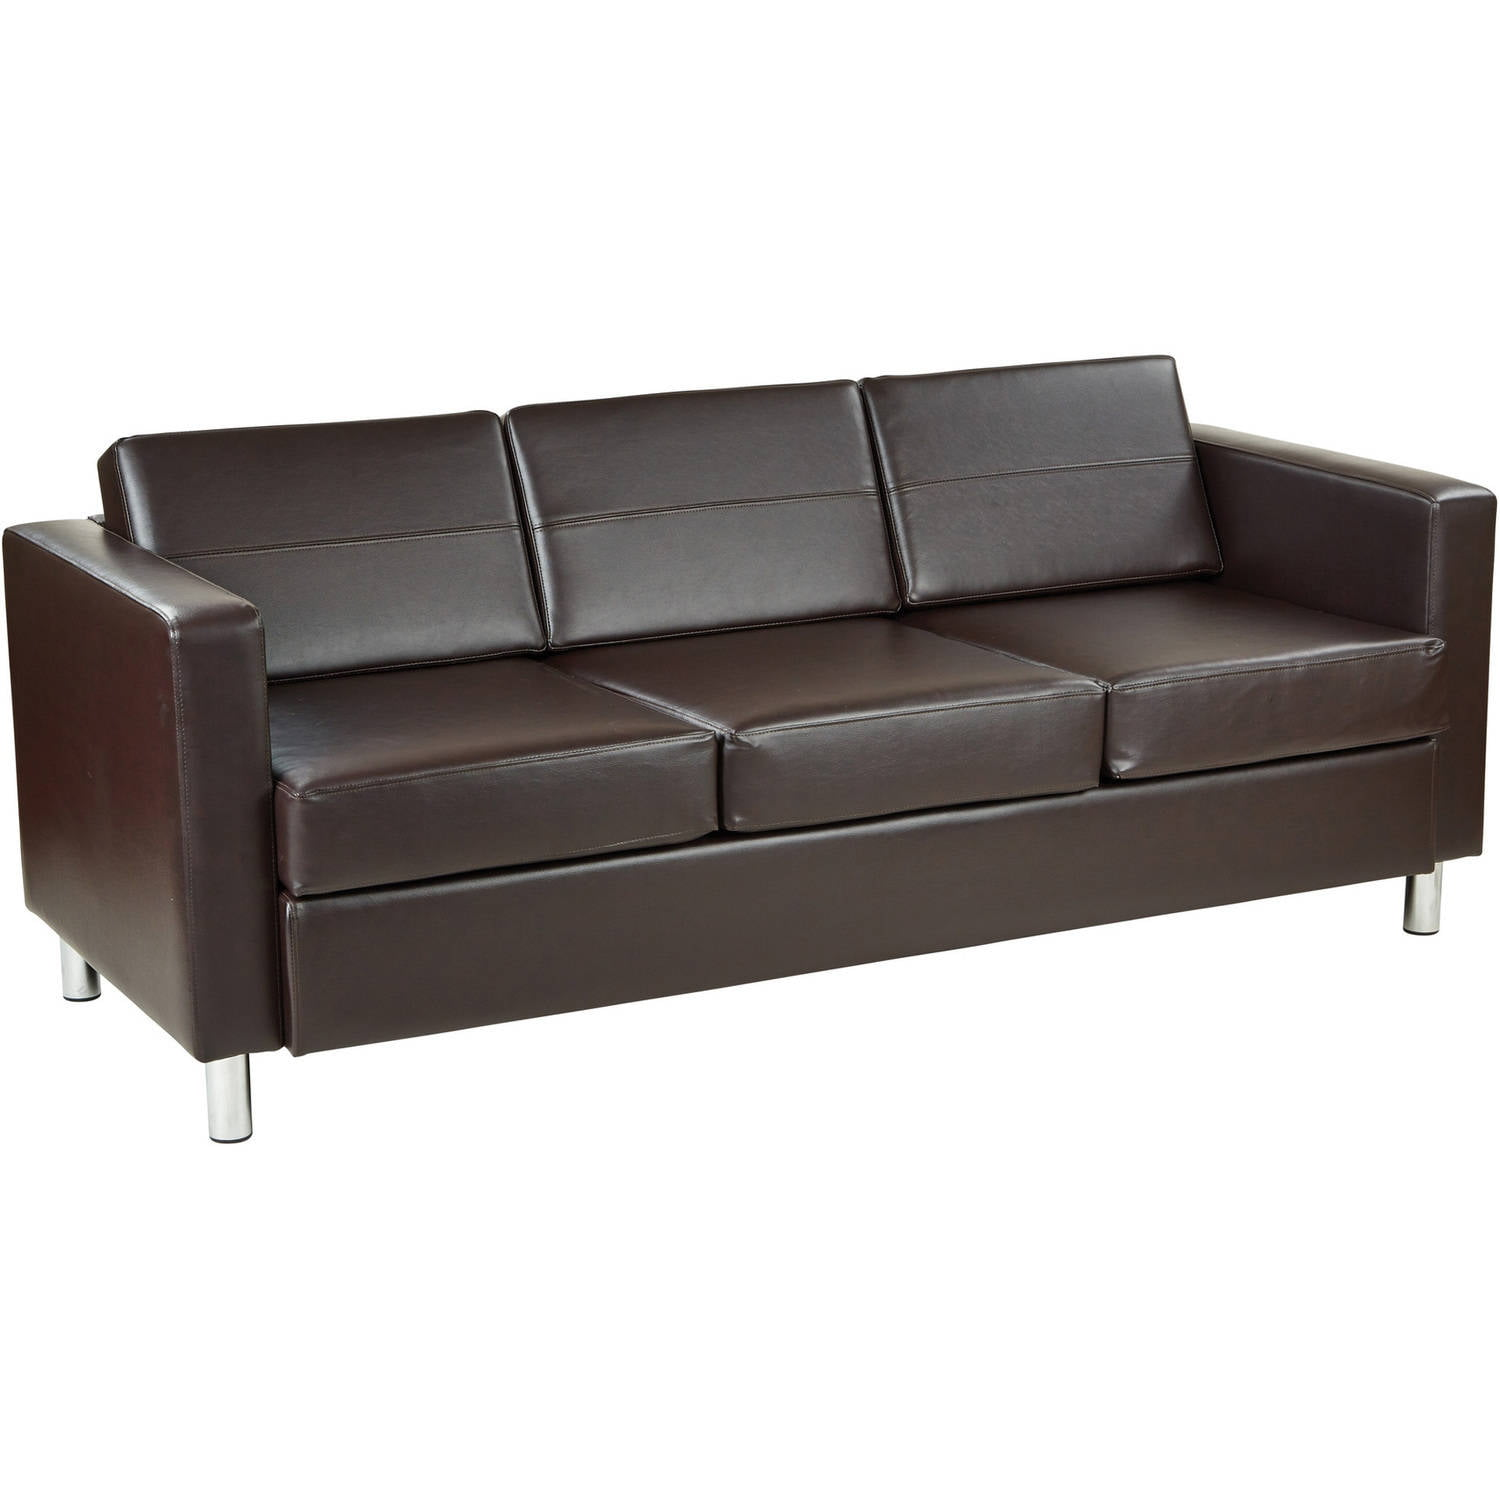 Ave Six Pacific Easy-Care Espresso Faux Leather Sofa Couch with Box Spring Seats and Silver Color Legs by Office Star